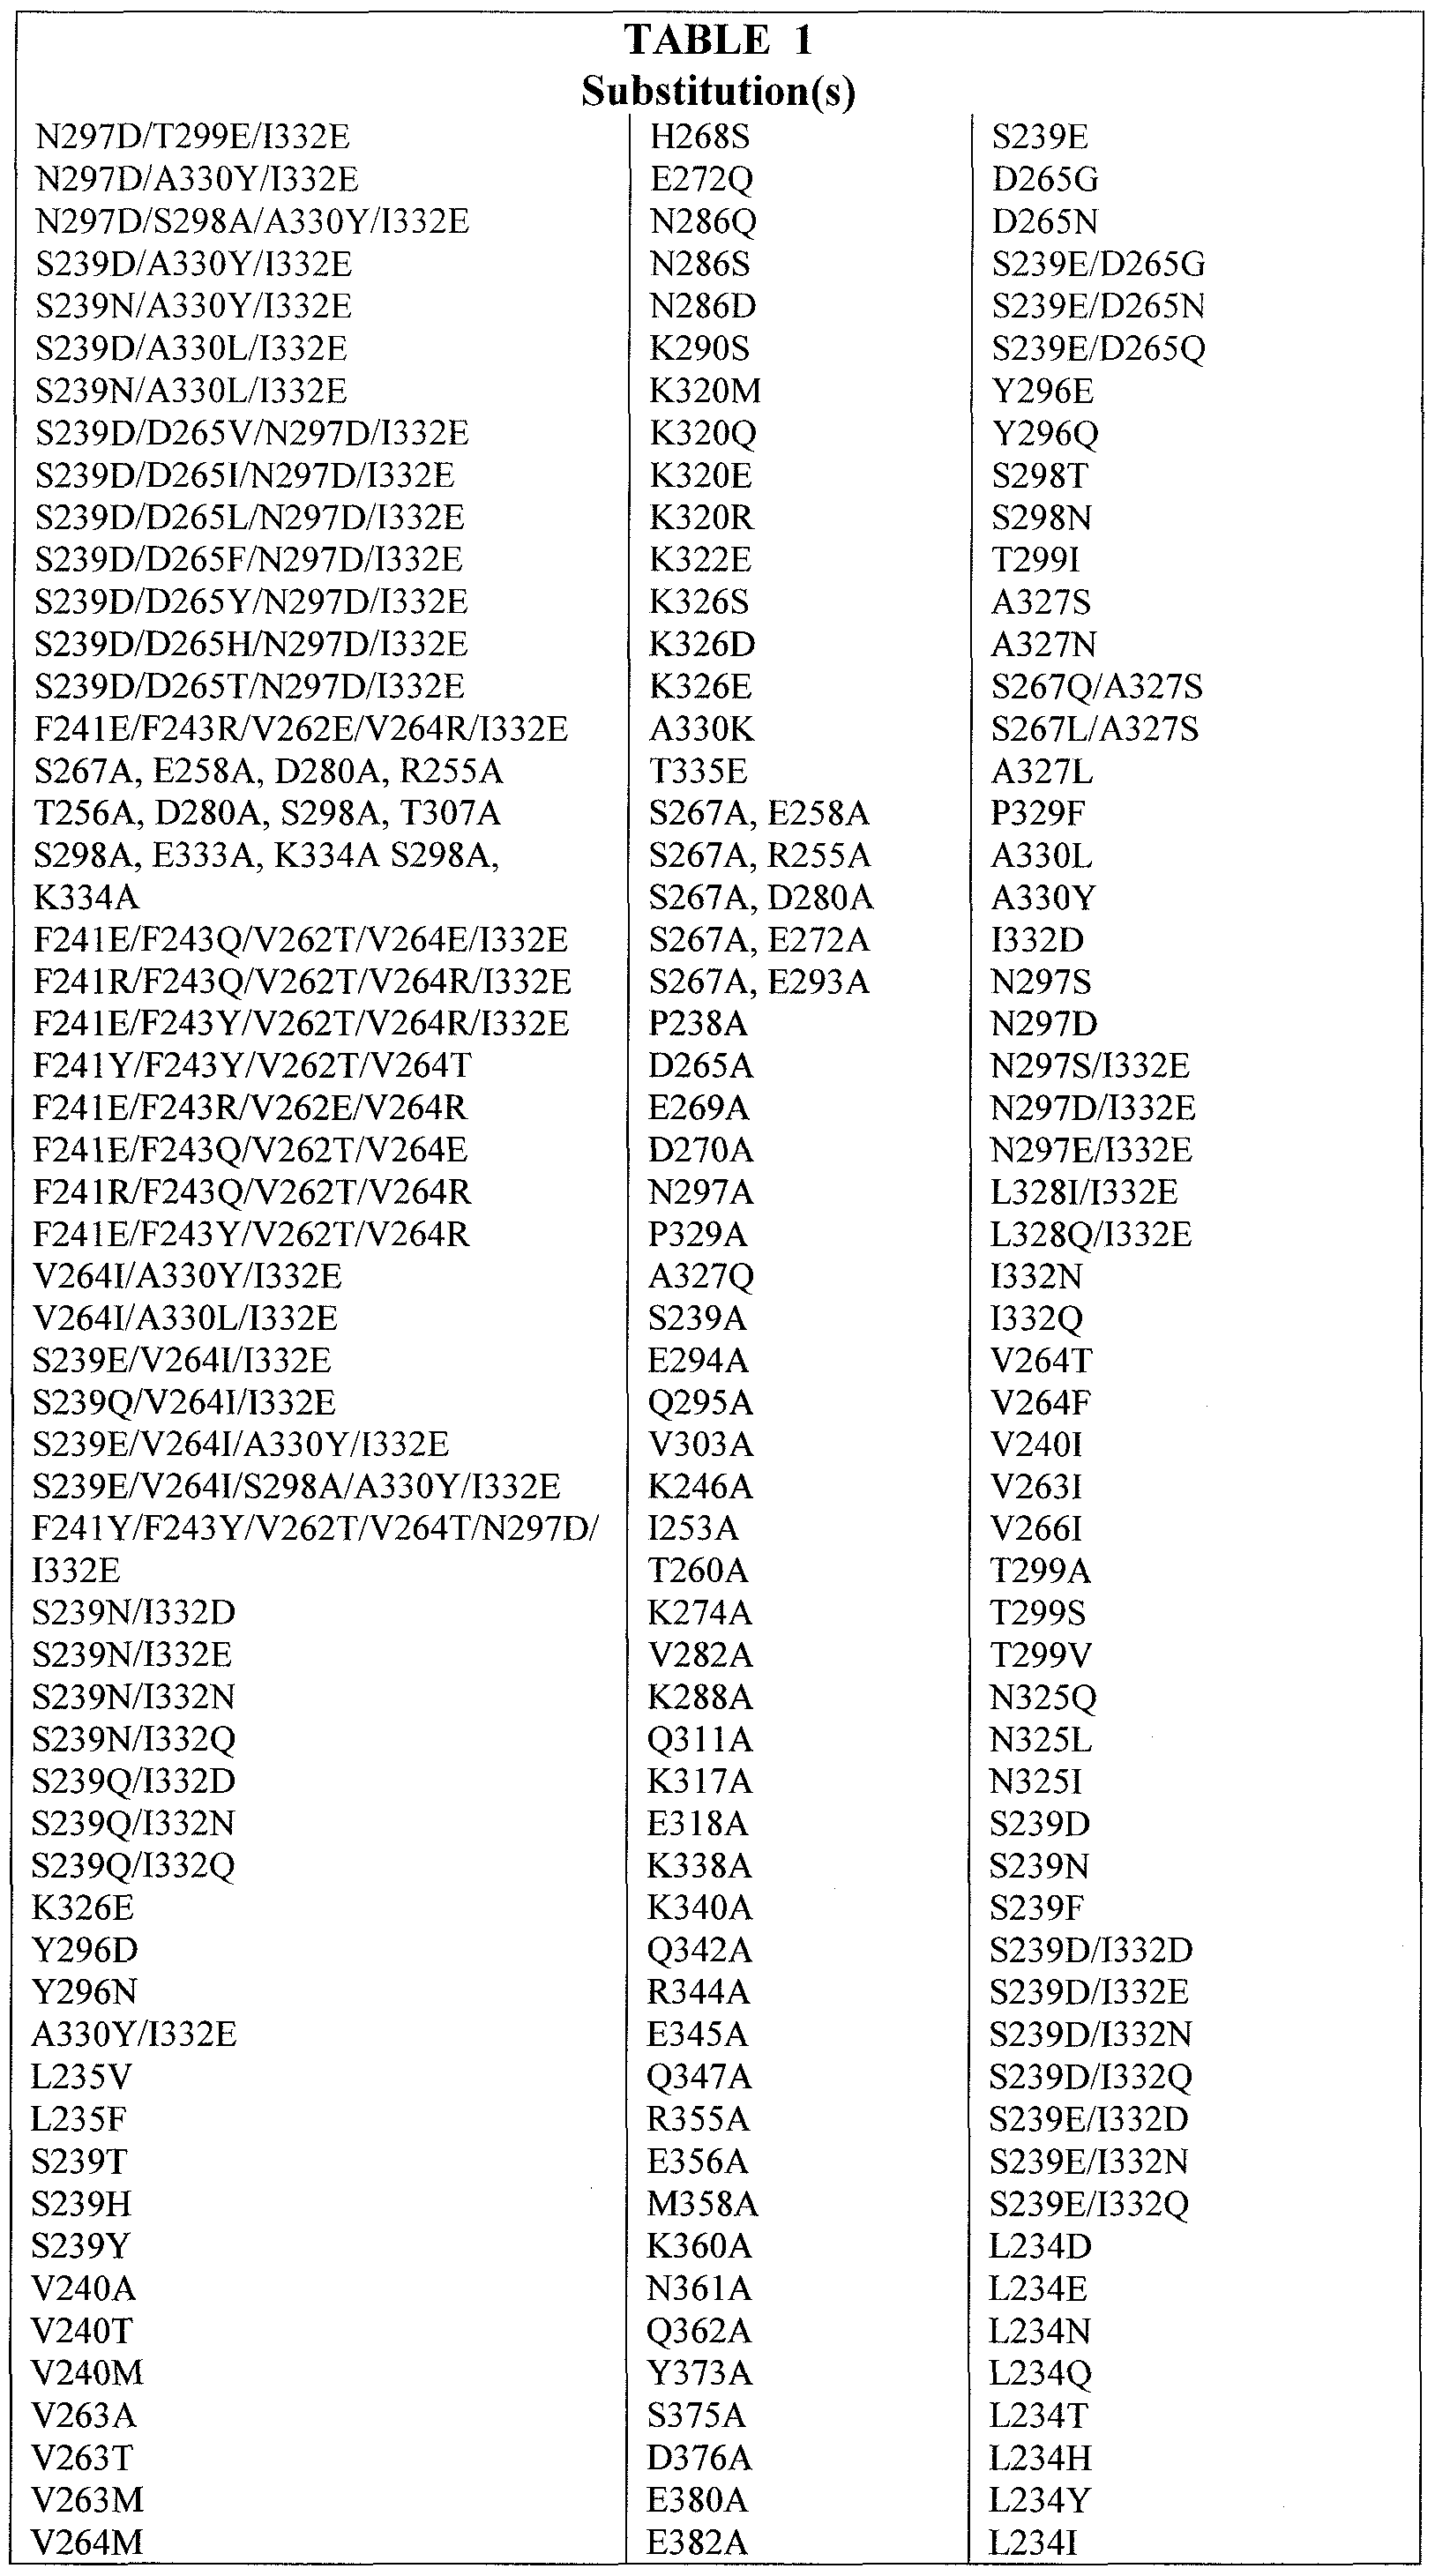 WO2008140603A2 - METHODS FOR THE TREATMENT OF DISEASE USING